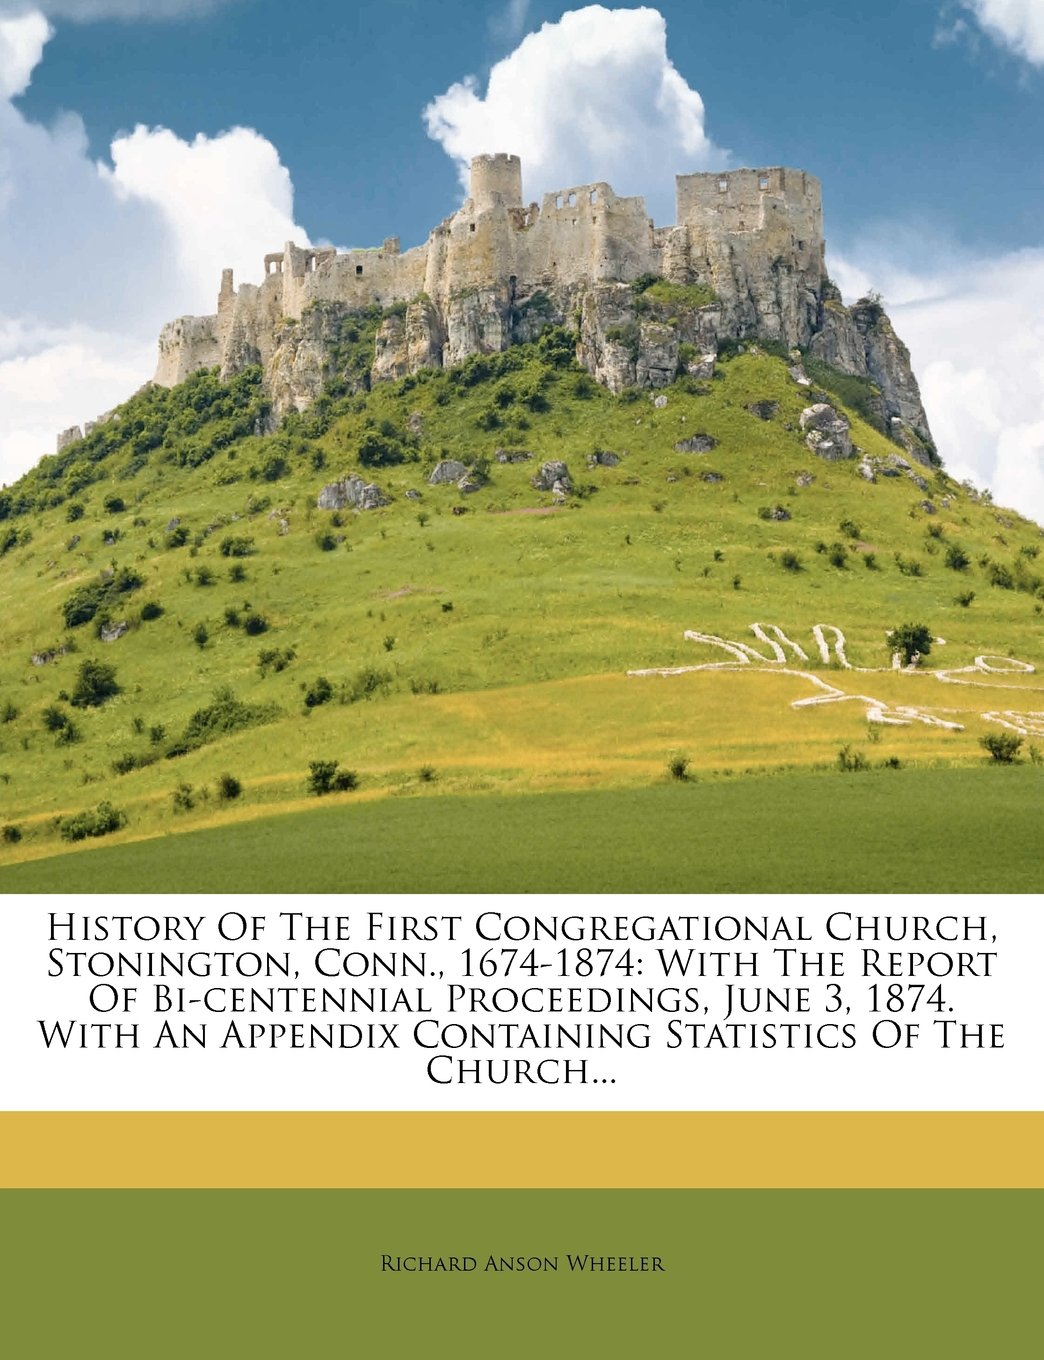 Download History Of The First Congregational Church, Stonington, Conn., 1674-1874: With The Report Of Bi-centennial Proceedings, June 3, 1874. With An Appendix Containing Statistics Of The Church... ebook